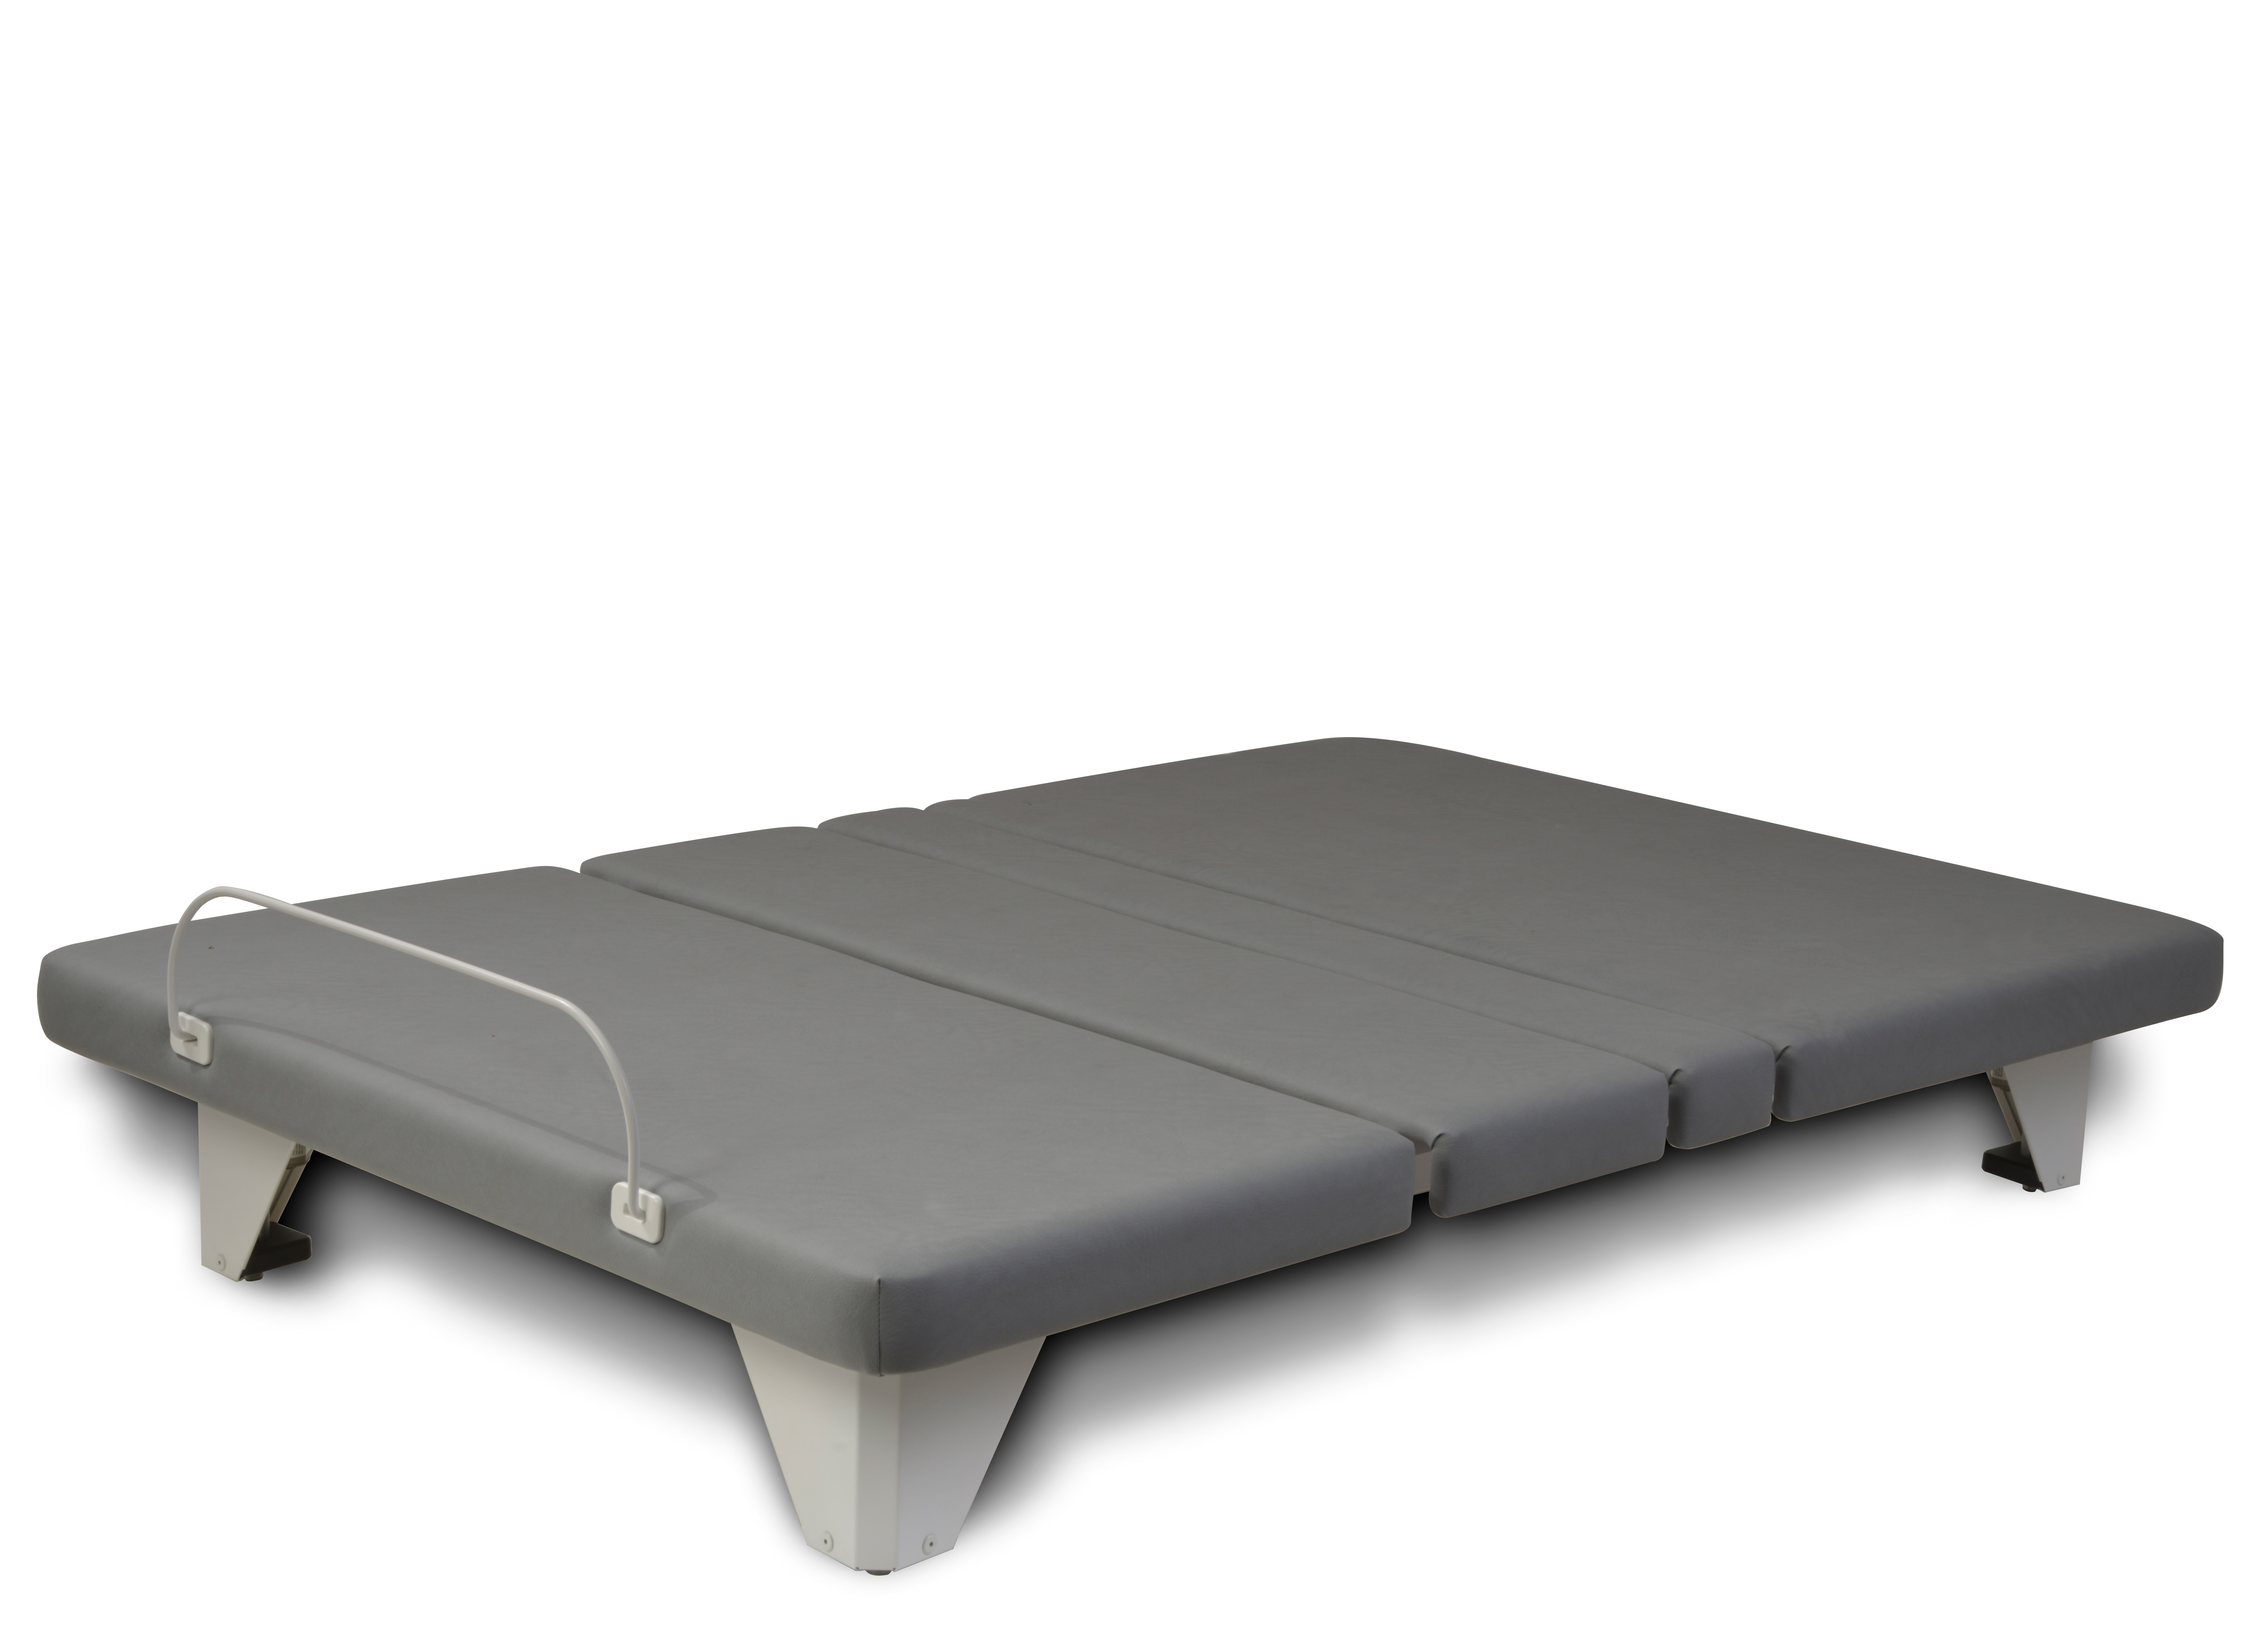 Assured Comfort Hi-Low Adjustable Bed - Signature Queen - Down Position - Foundation only.